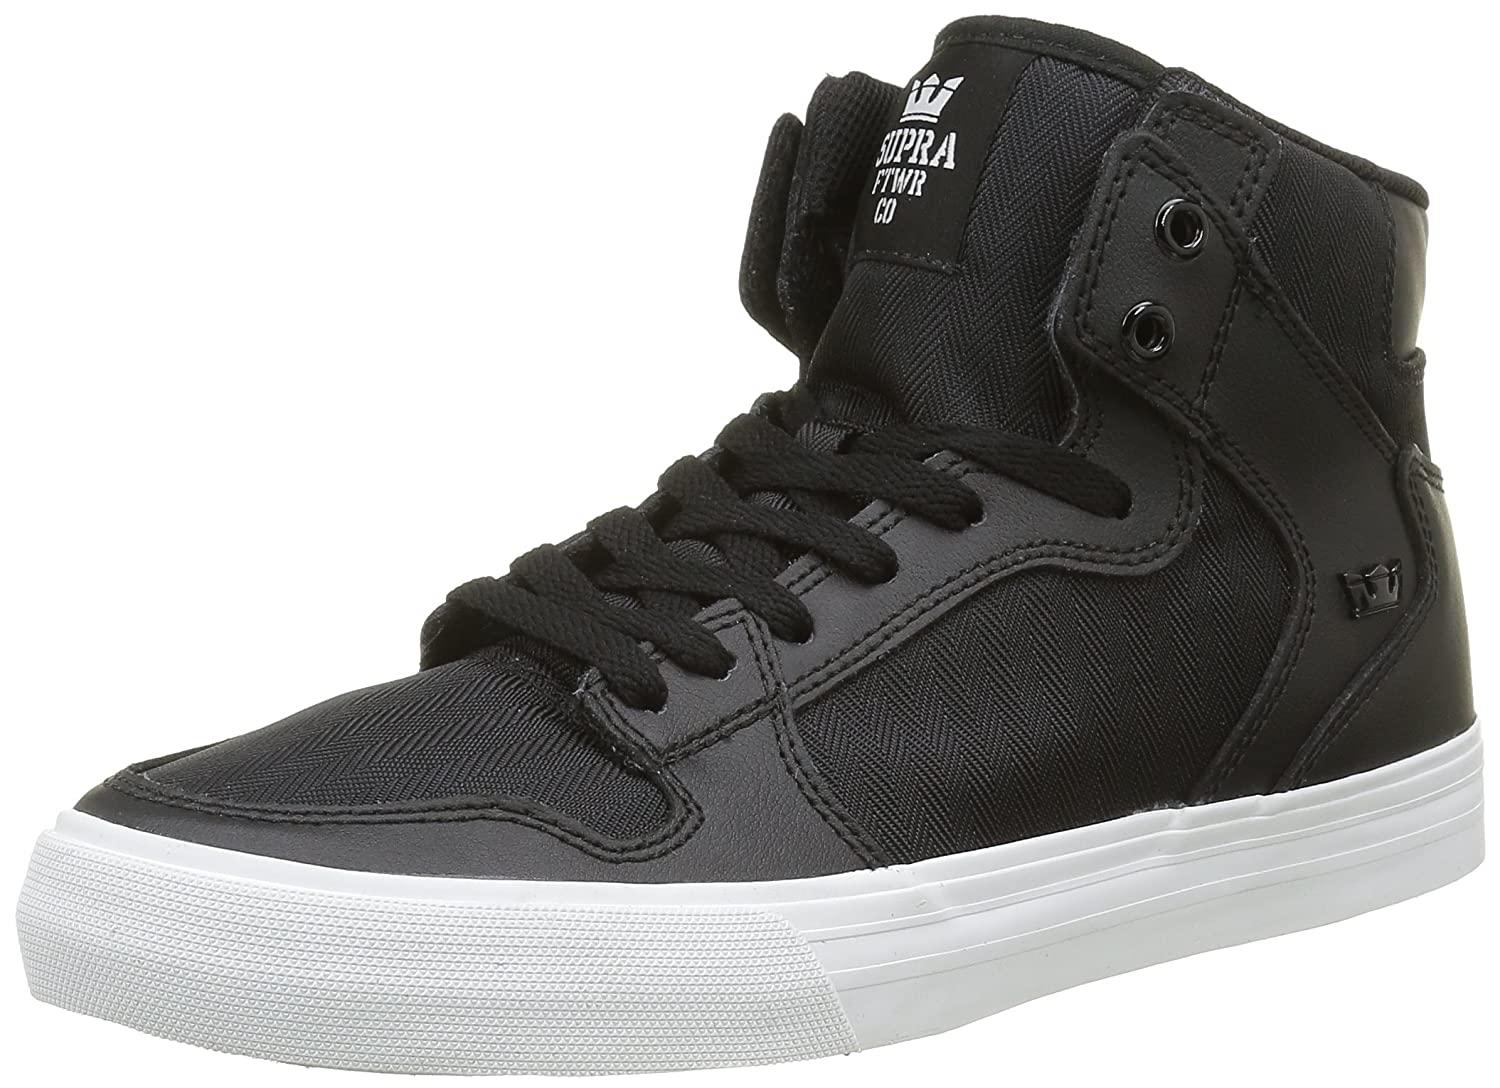 Supra Vaider LC Sneaker B01B3RPQPW Medium / 10 C/D US Women / 8.5 D(M) US Men|Black Leather